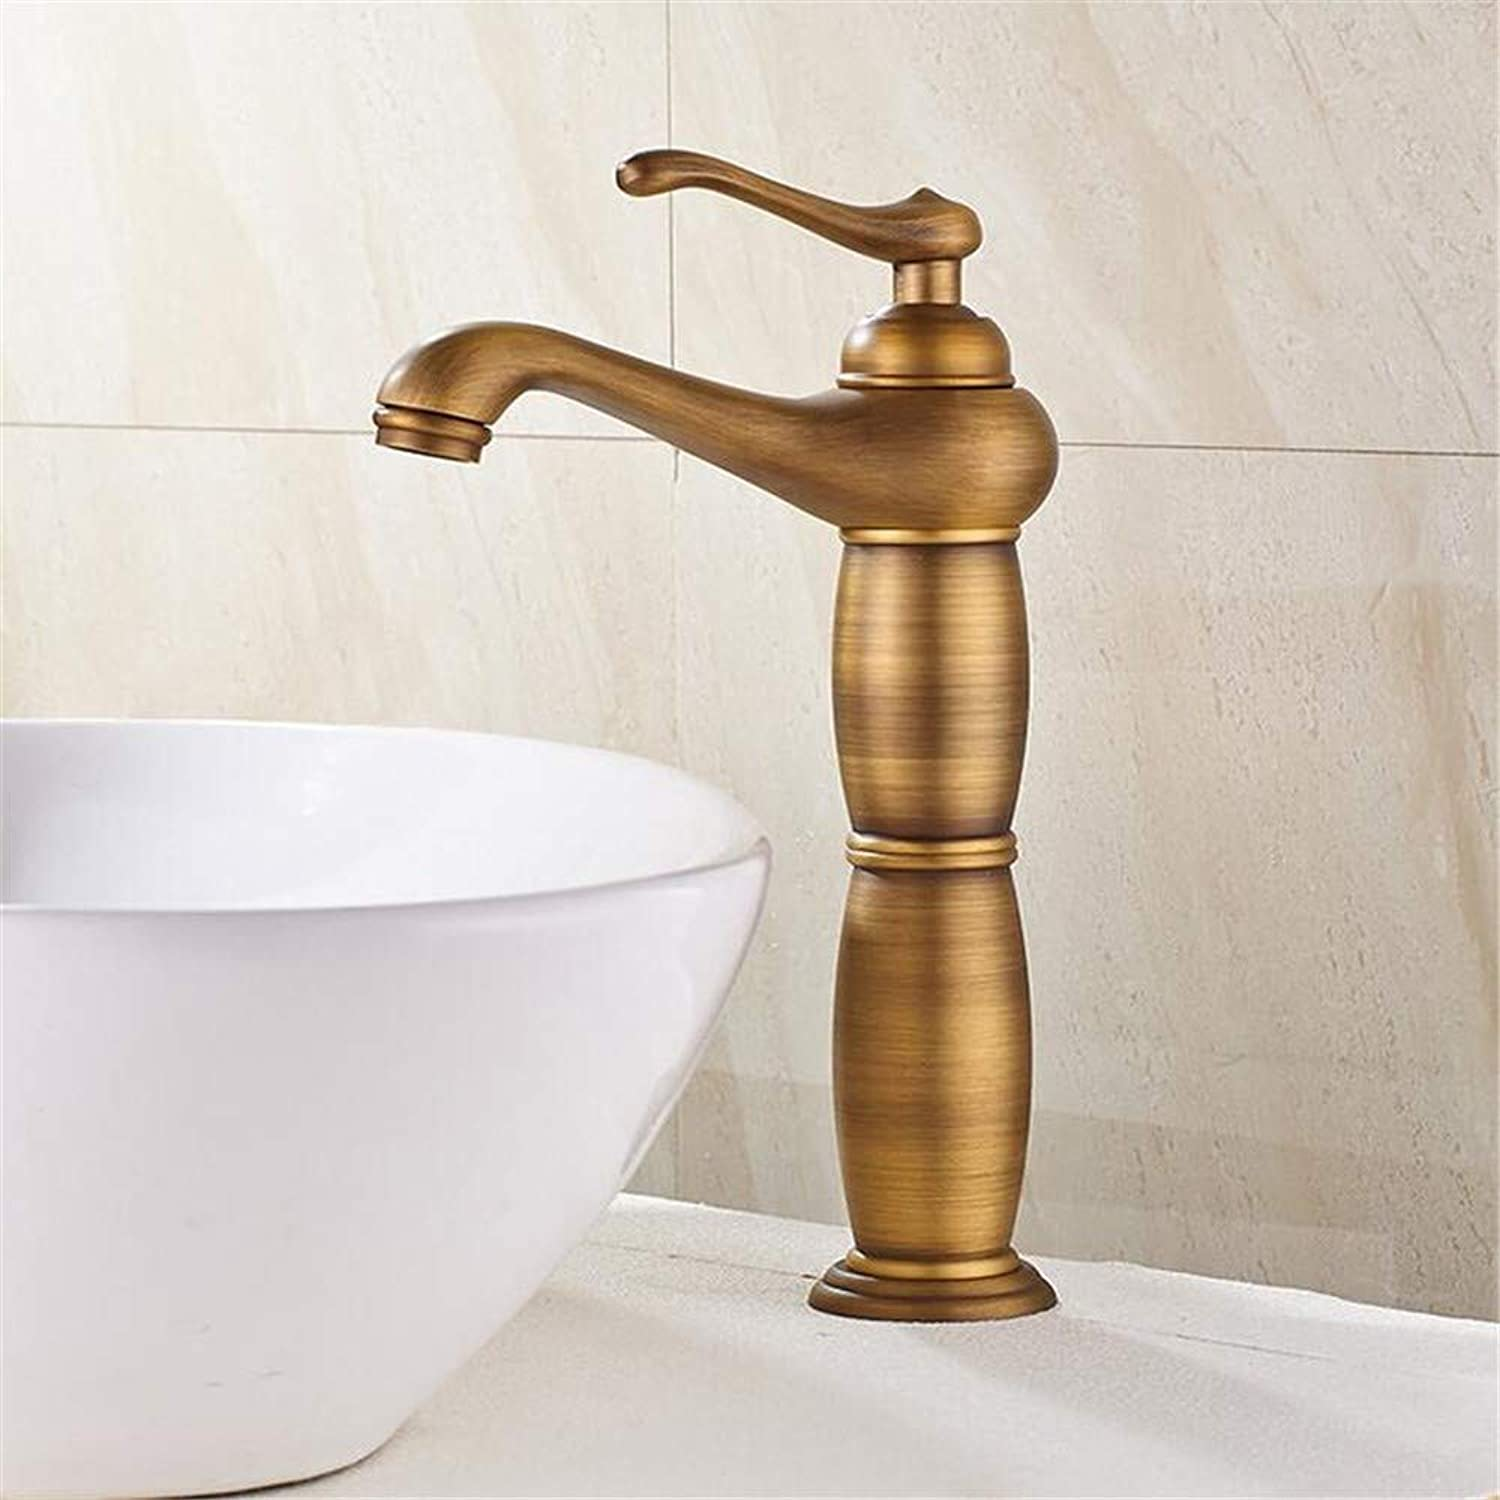 Basin Mixer Tap ?All Copper European Hot and Cold Faucet Antique Basin Faucet Heightening Single Hole Above Counter Basin Faucet Retro Magic Lamp Faucet